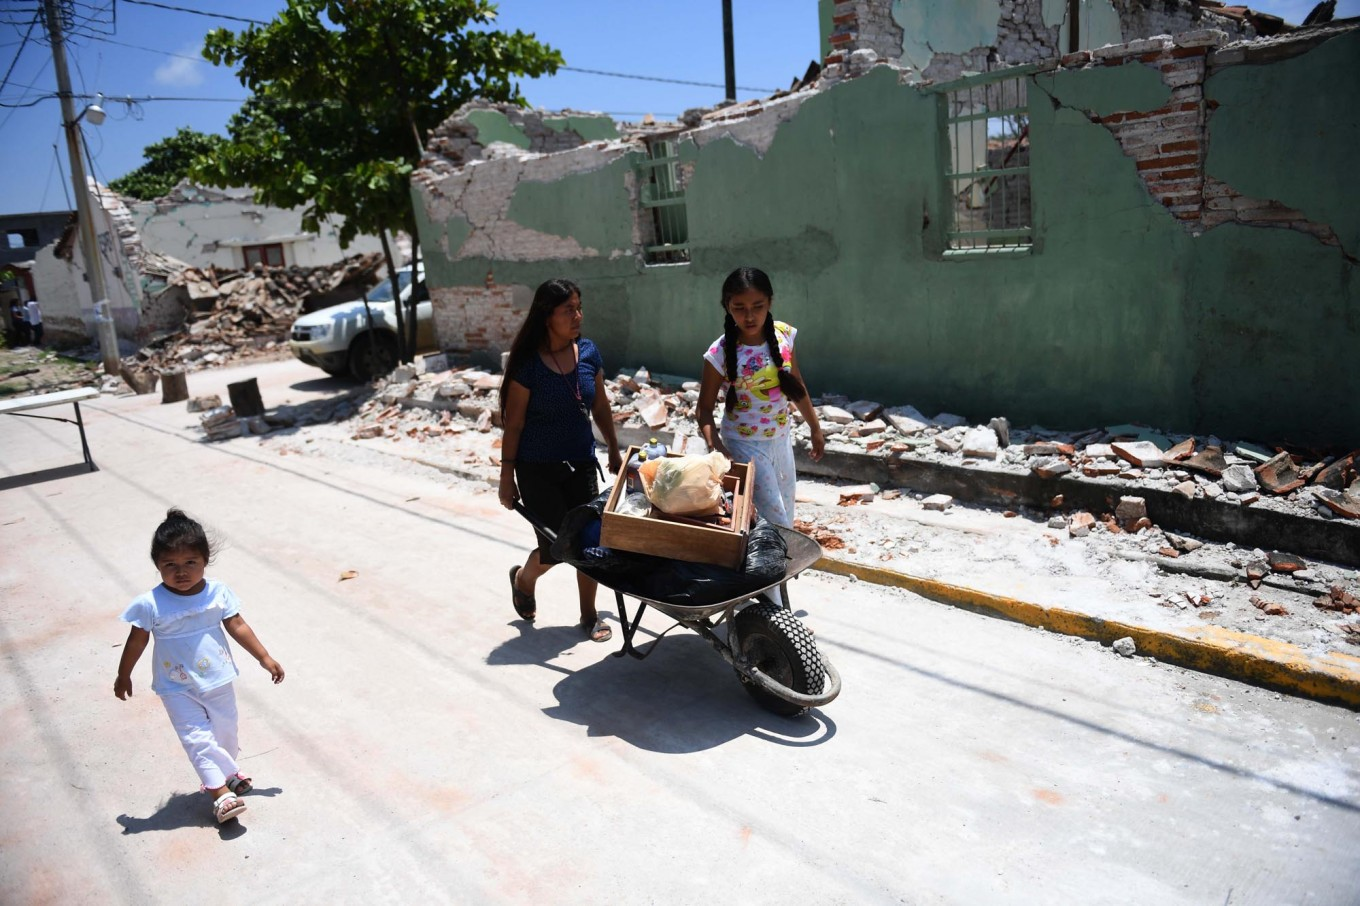 People walk by buildings knocked down by  a quake, in Ixtaltepec, Oaxaca, Mexico, on September 9, 2017. Mexico's most powerful earthquake in a century killed at least 35 people, officials said, after it struck the Pacific coast, wrecking homes and sending families fleeing into the streets. AFP/ Ronaldo Schemidt